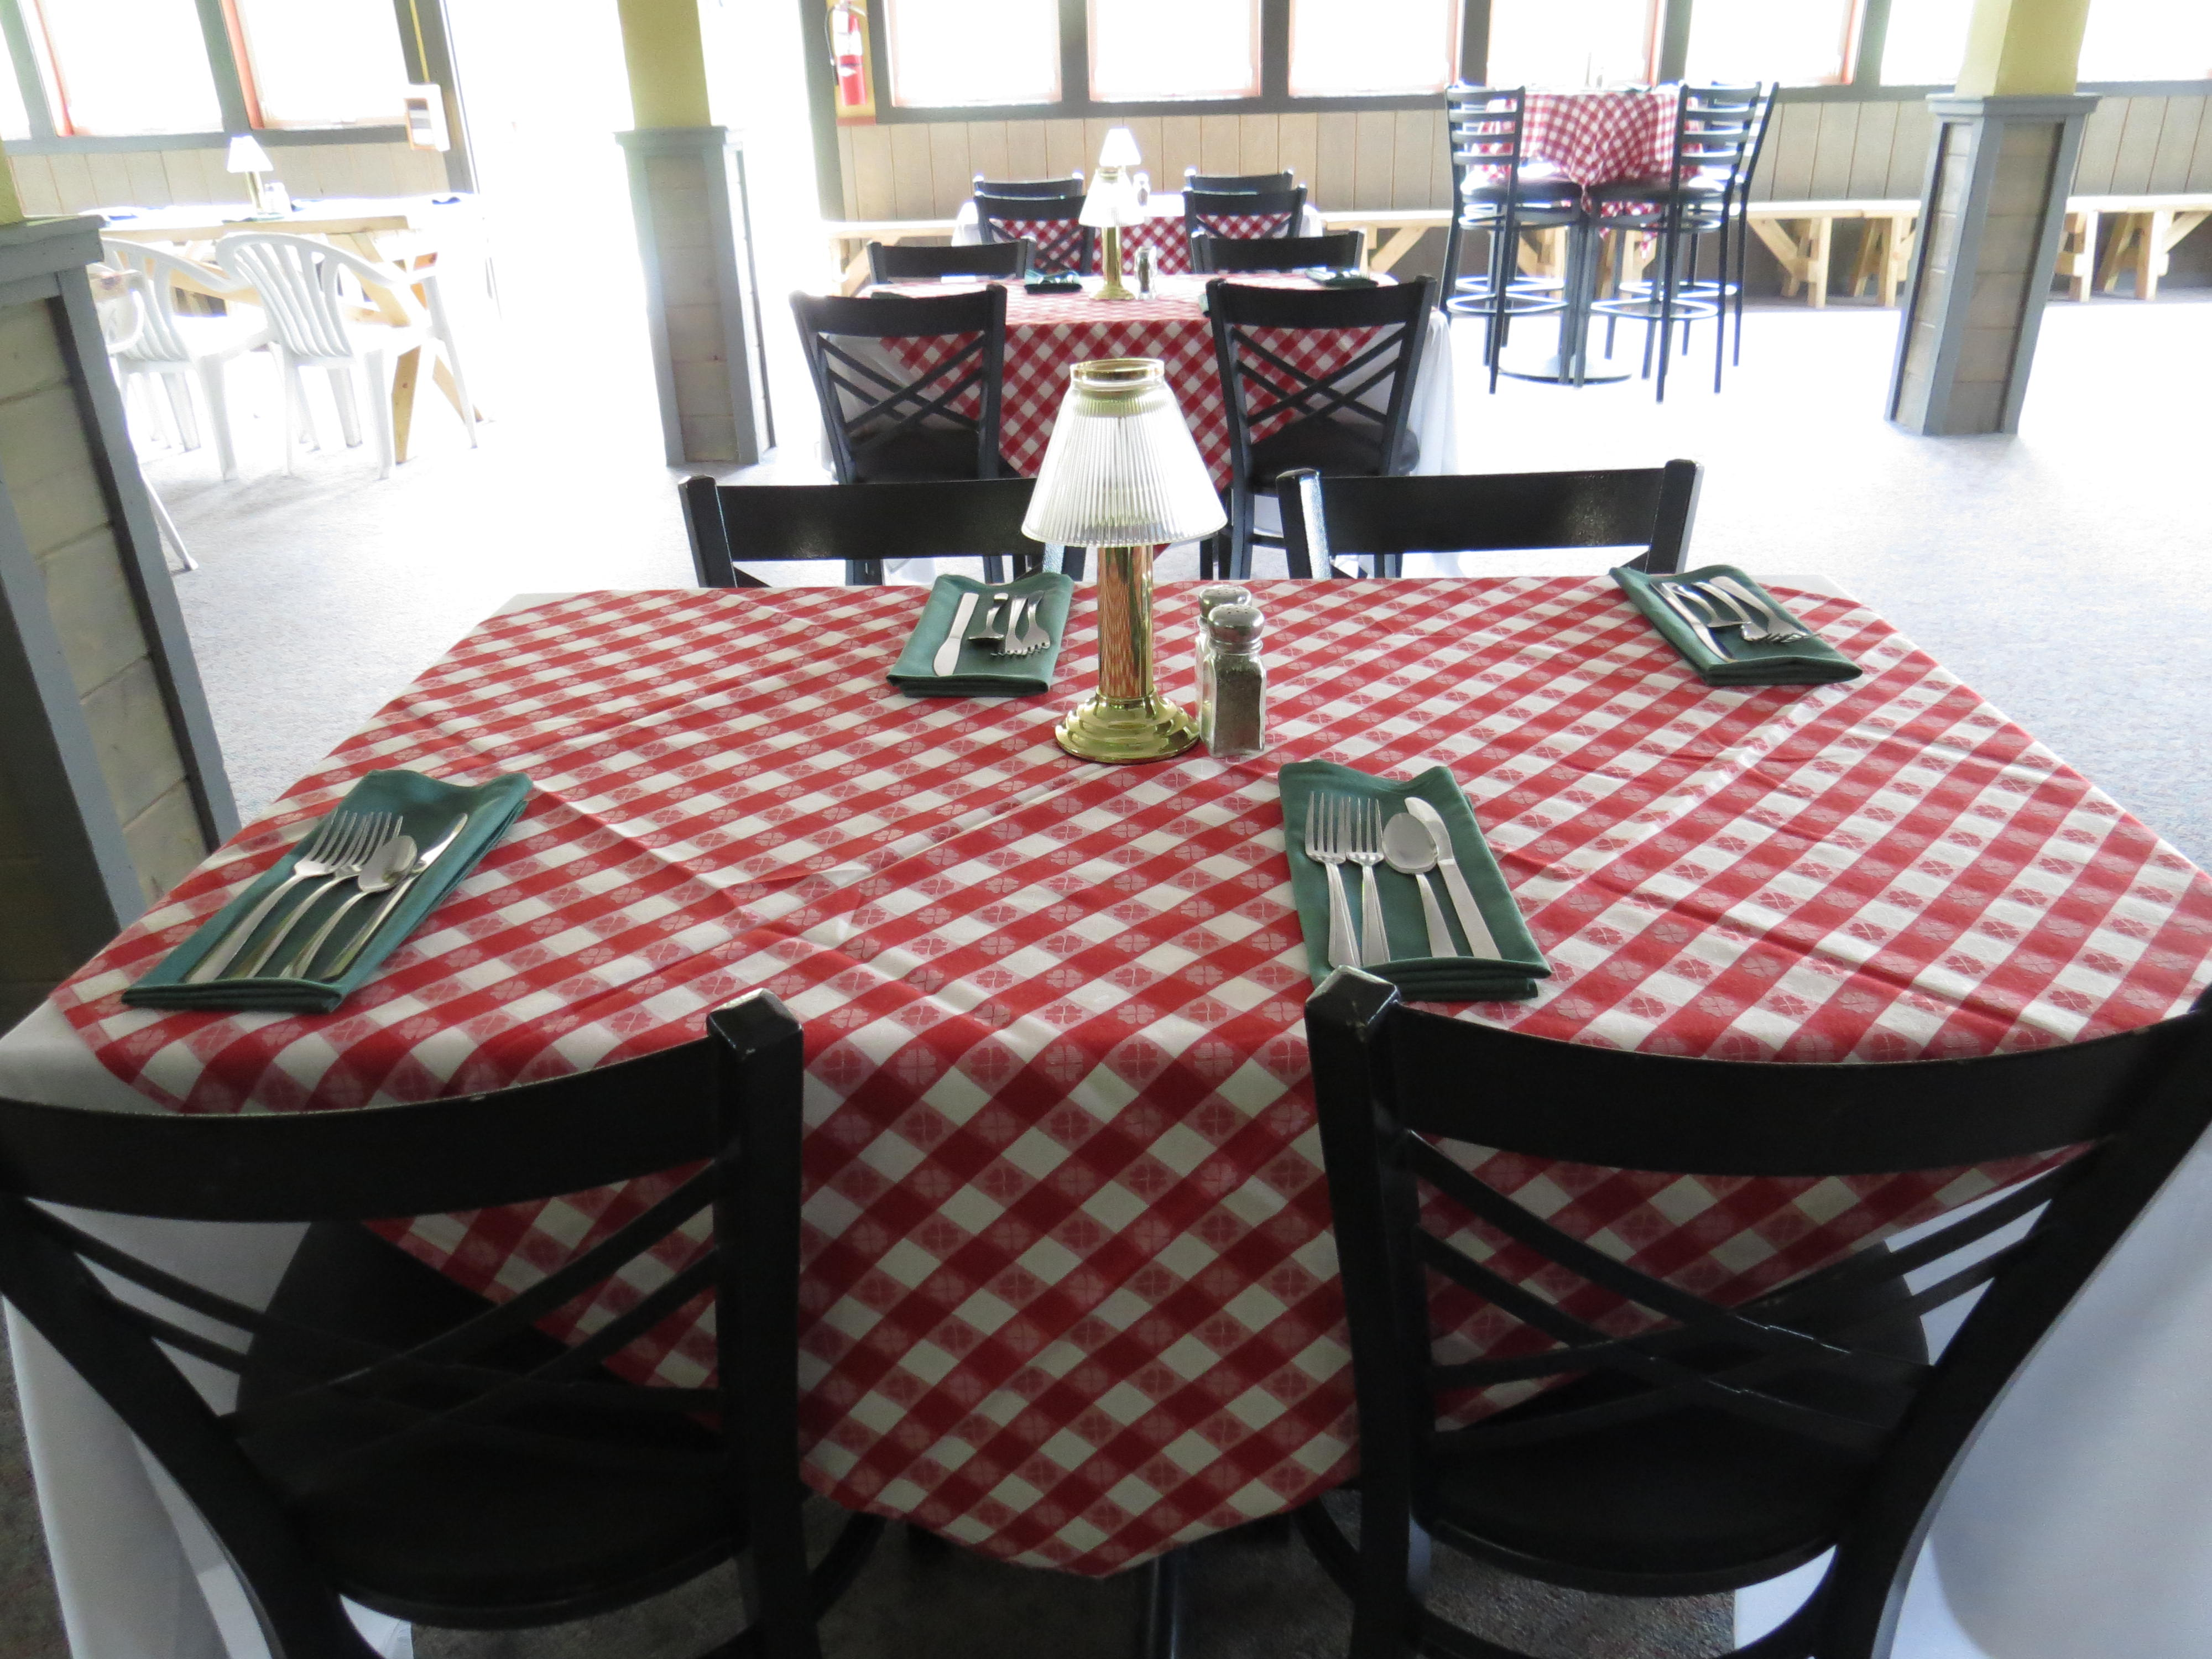 tables set for Italian Night